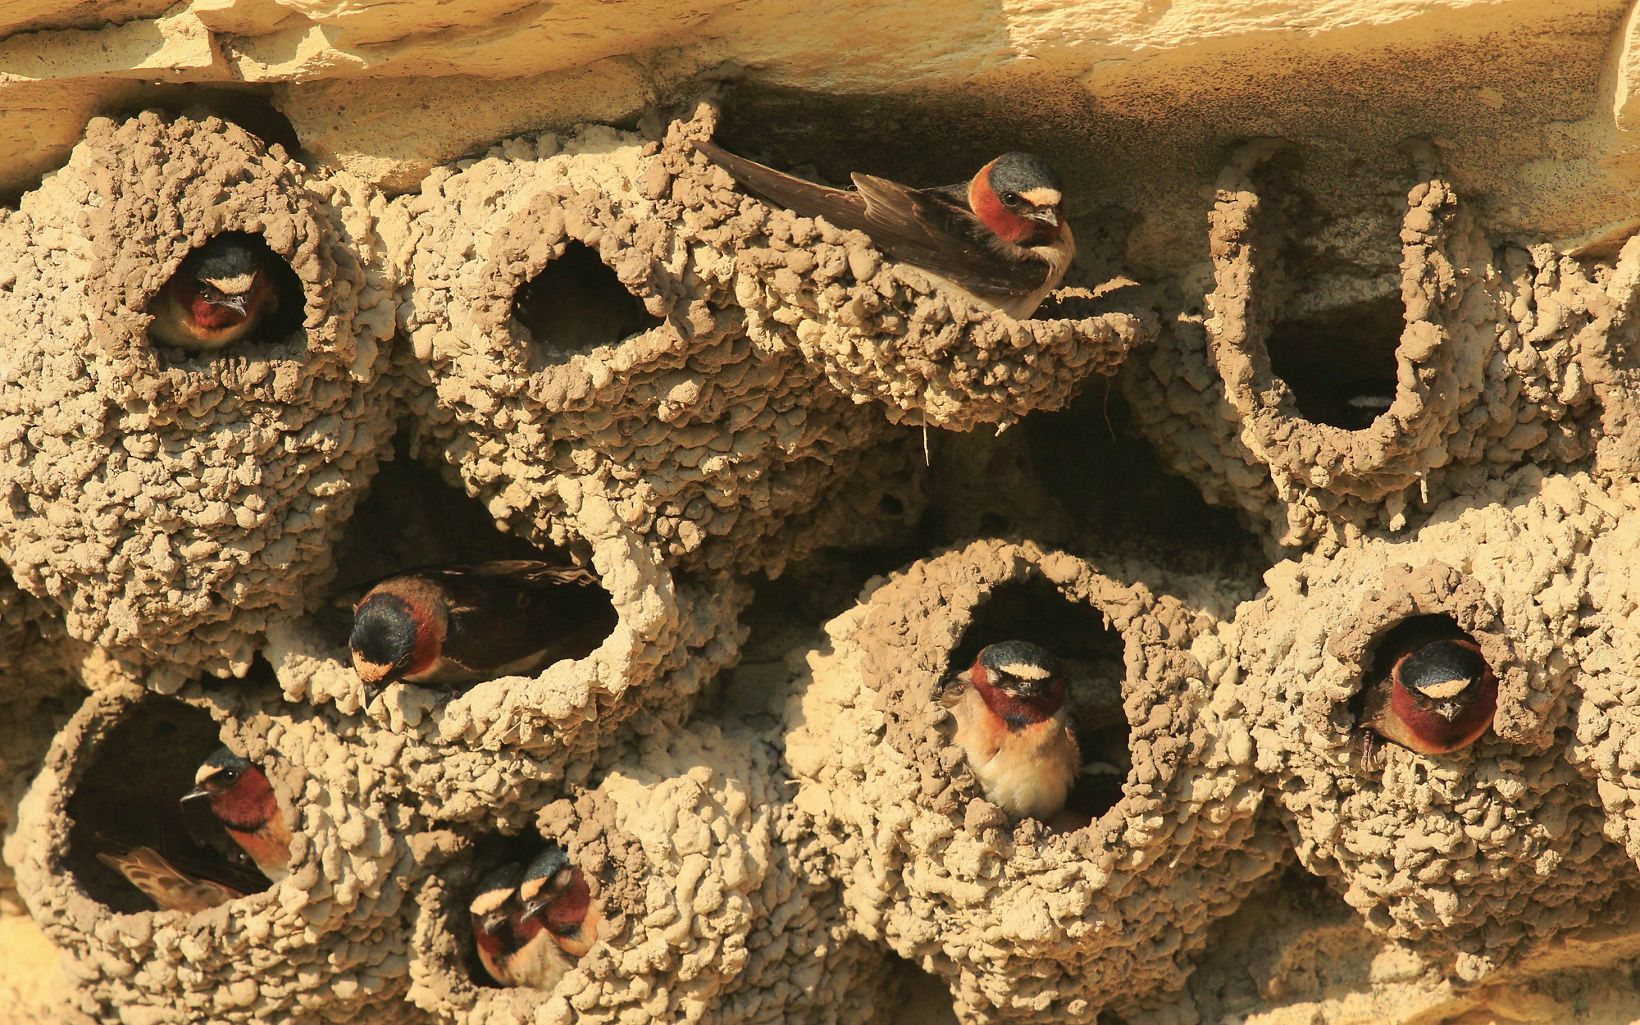 A flock of cliff swallows sit in round nests made of dried mud, which hang near the tops of rock formations in western Kansas.